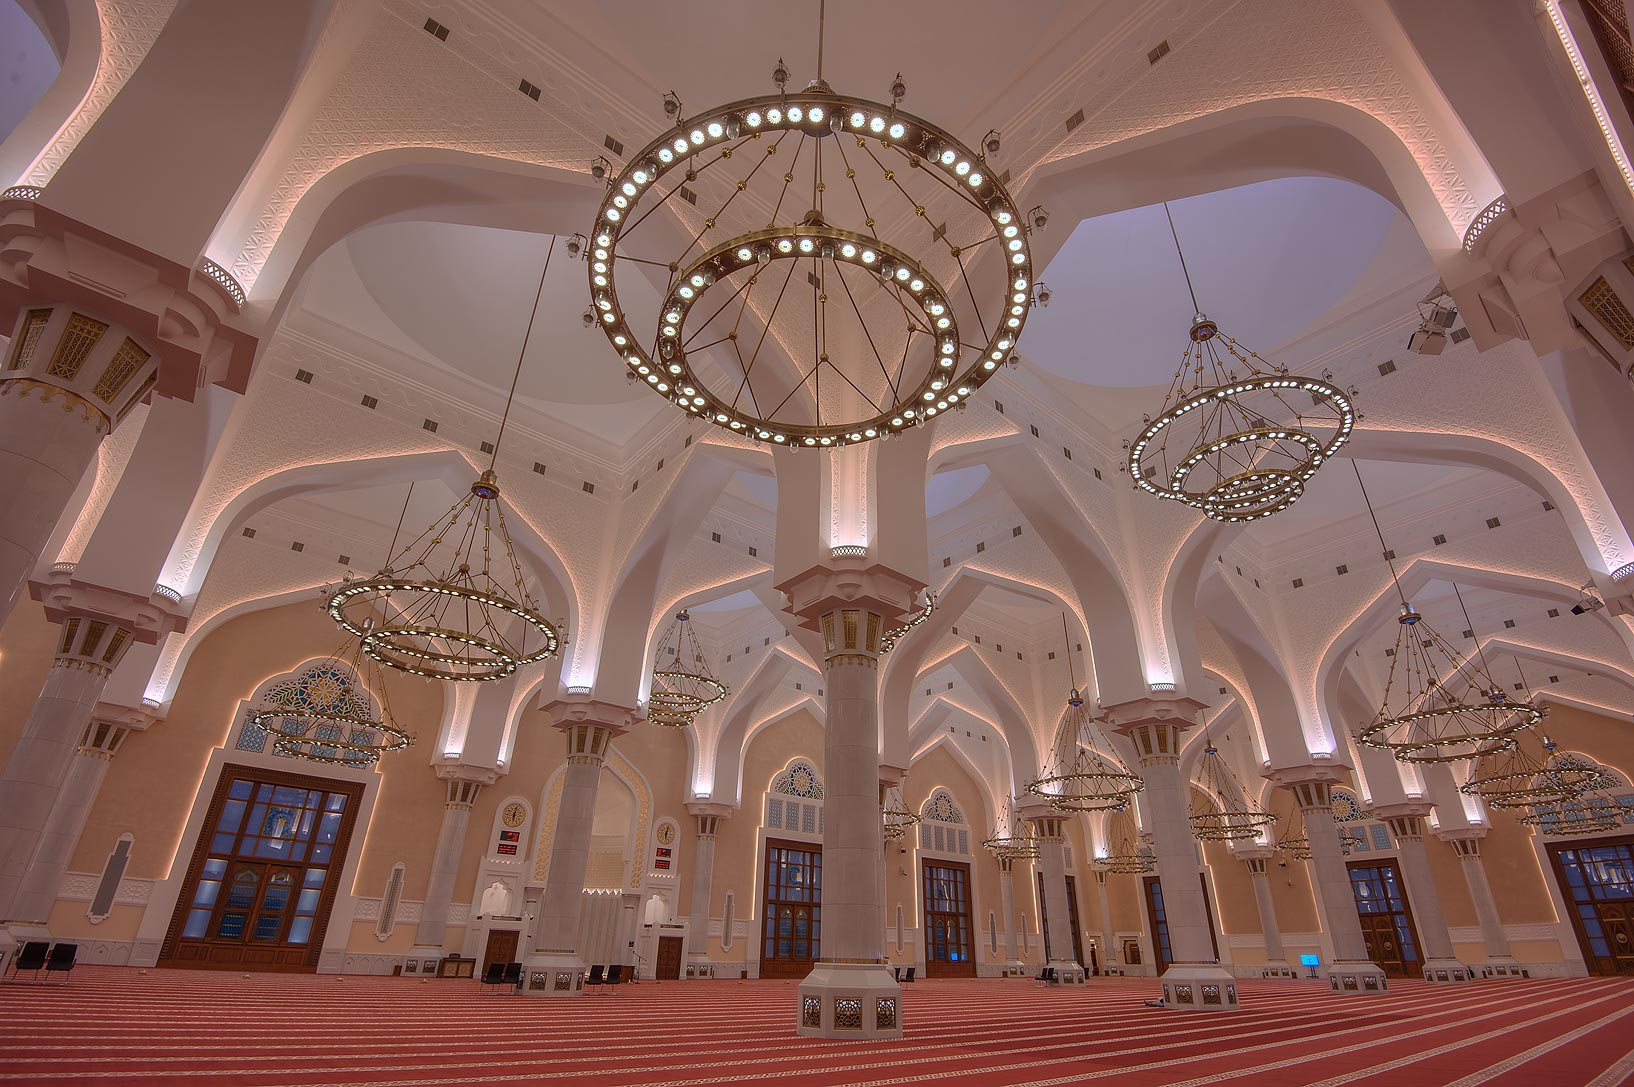 Arches of prayer hall of State Mosque (Sheikh...Wahhab Mosque) at morning. Doha, Qatar